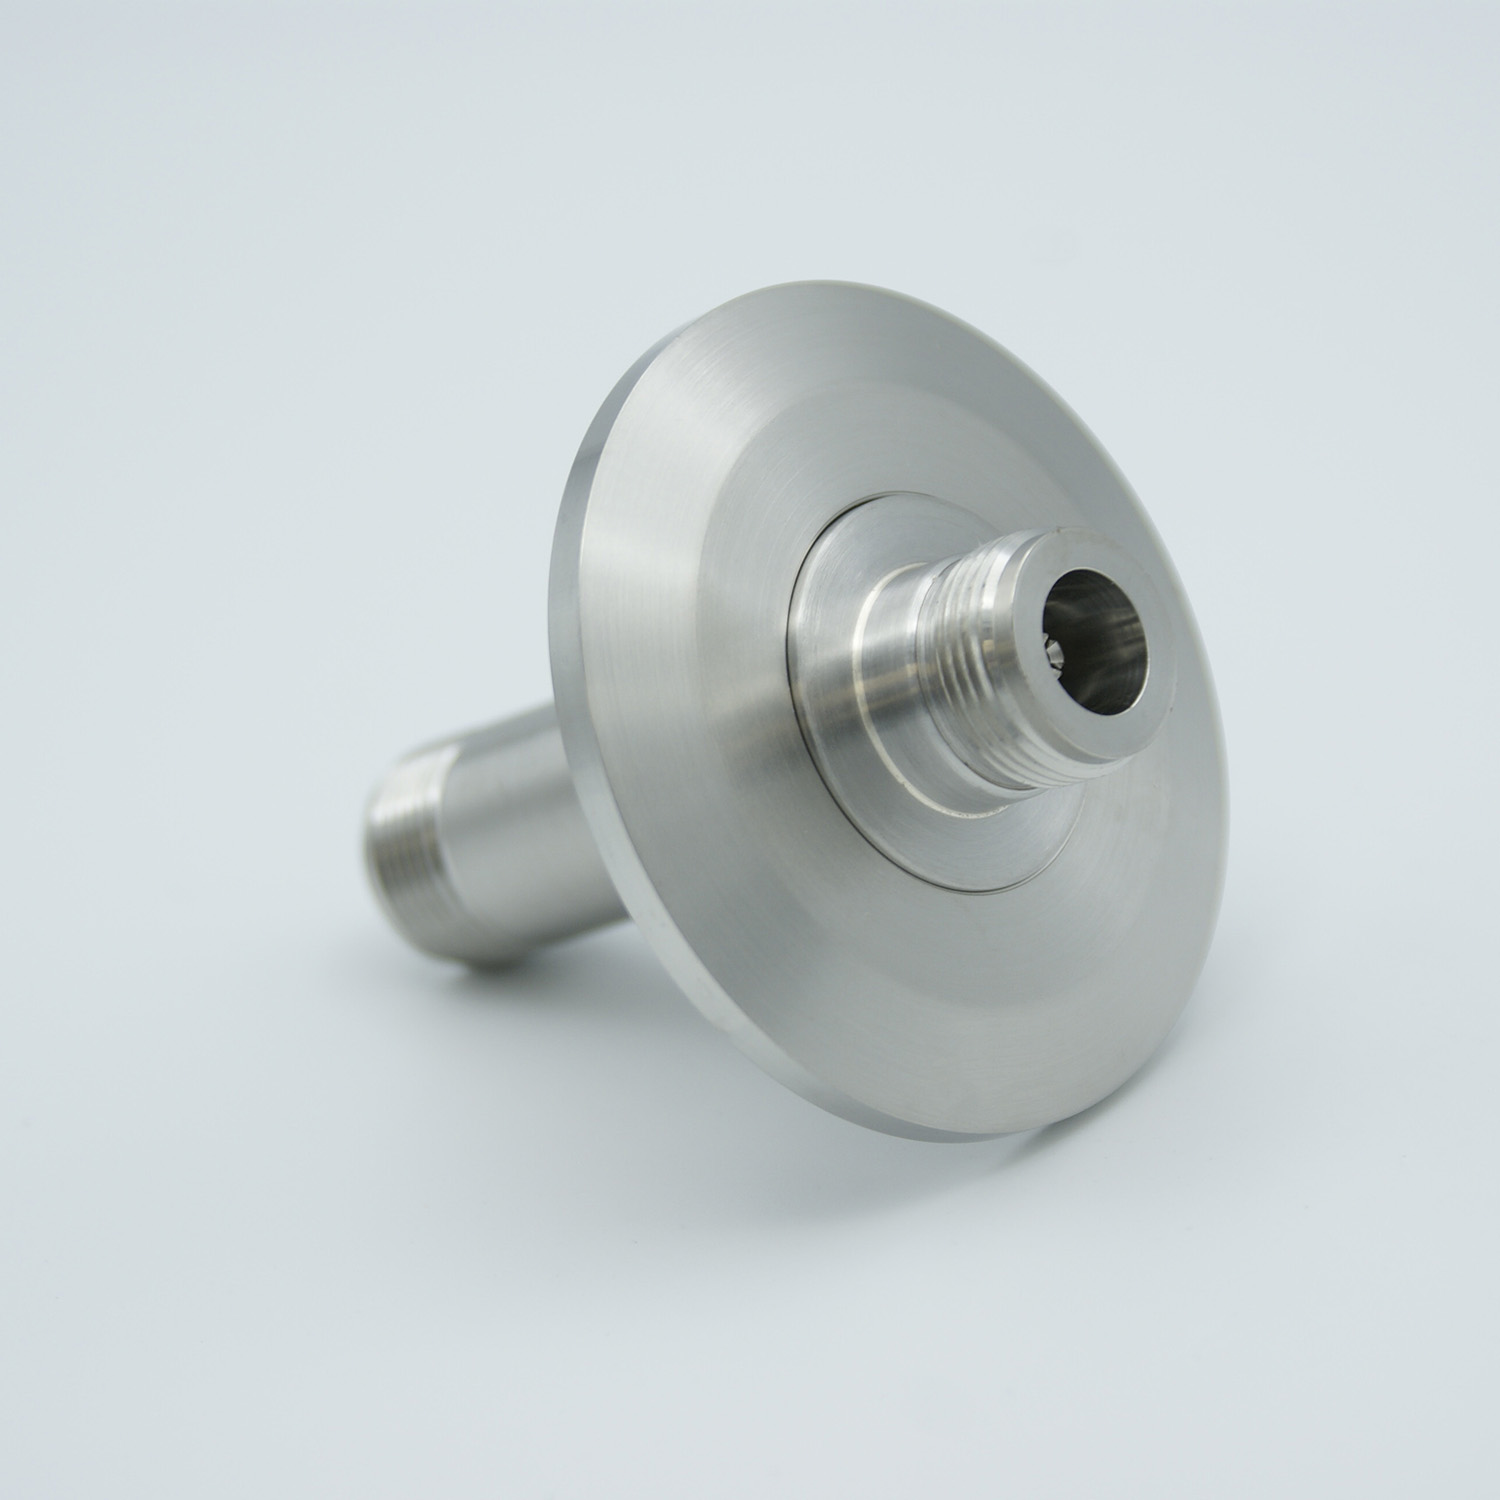 Type-N feedthrough double ended 500VDC, / 3 Amp, air side connector included DN40KF flange